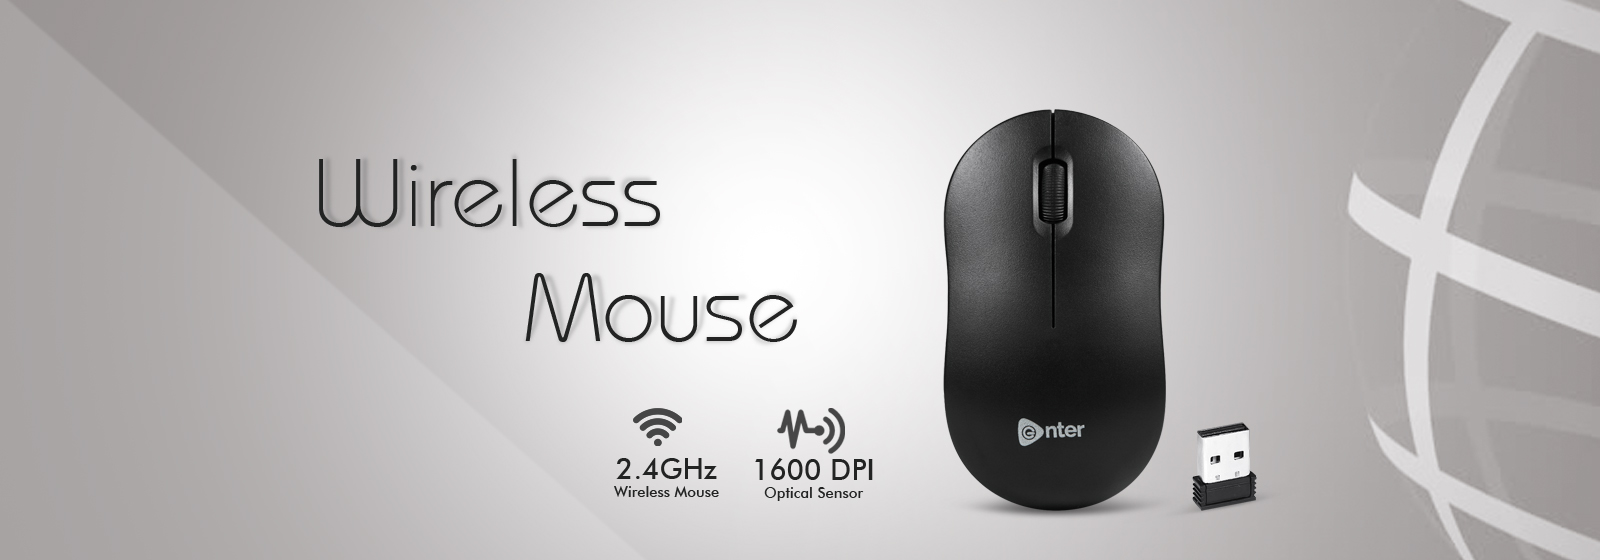 Wireless_Mouse-BAnner